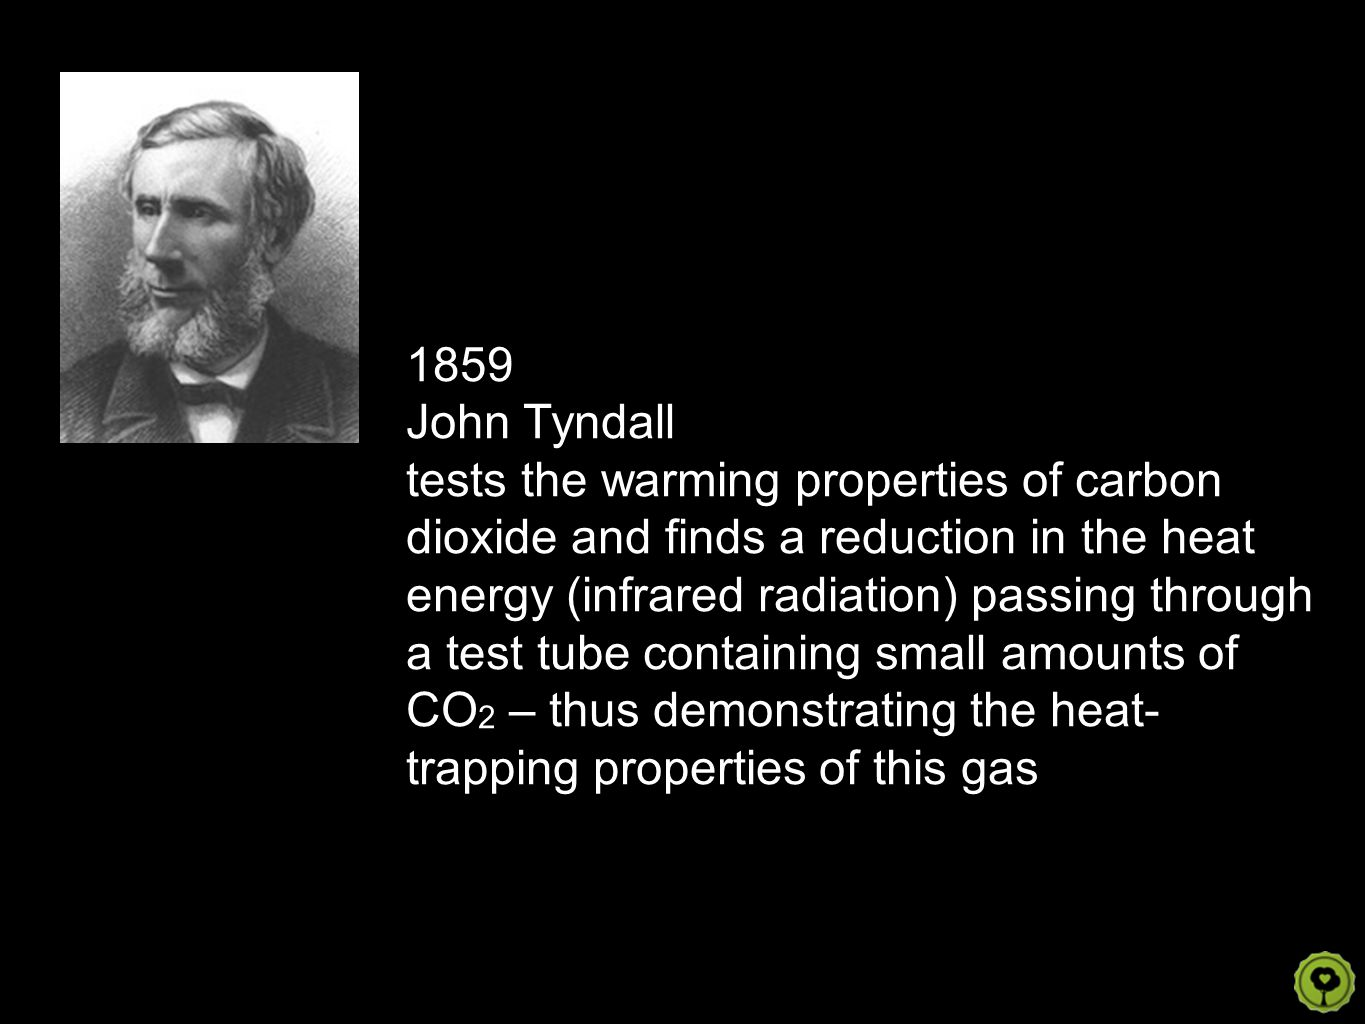 1896 Svante Arrhenius calculates that a 40% decrease or increase in atmospheric CO 2 might cool or warm the world sufficiently to trigger glacial advances or retreats